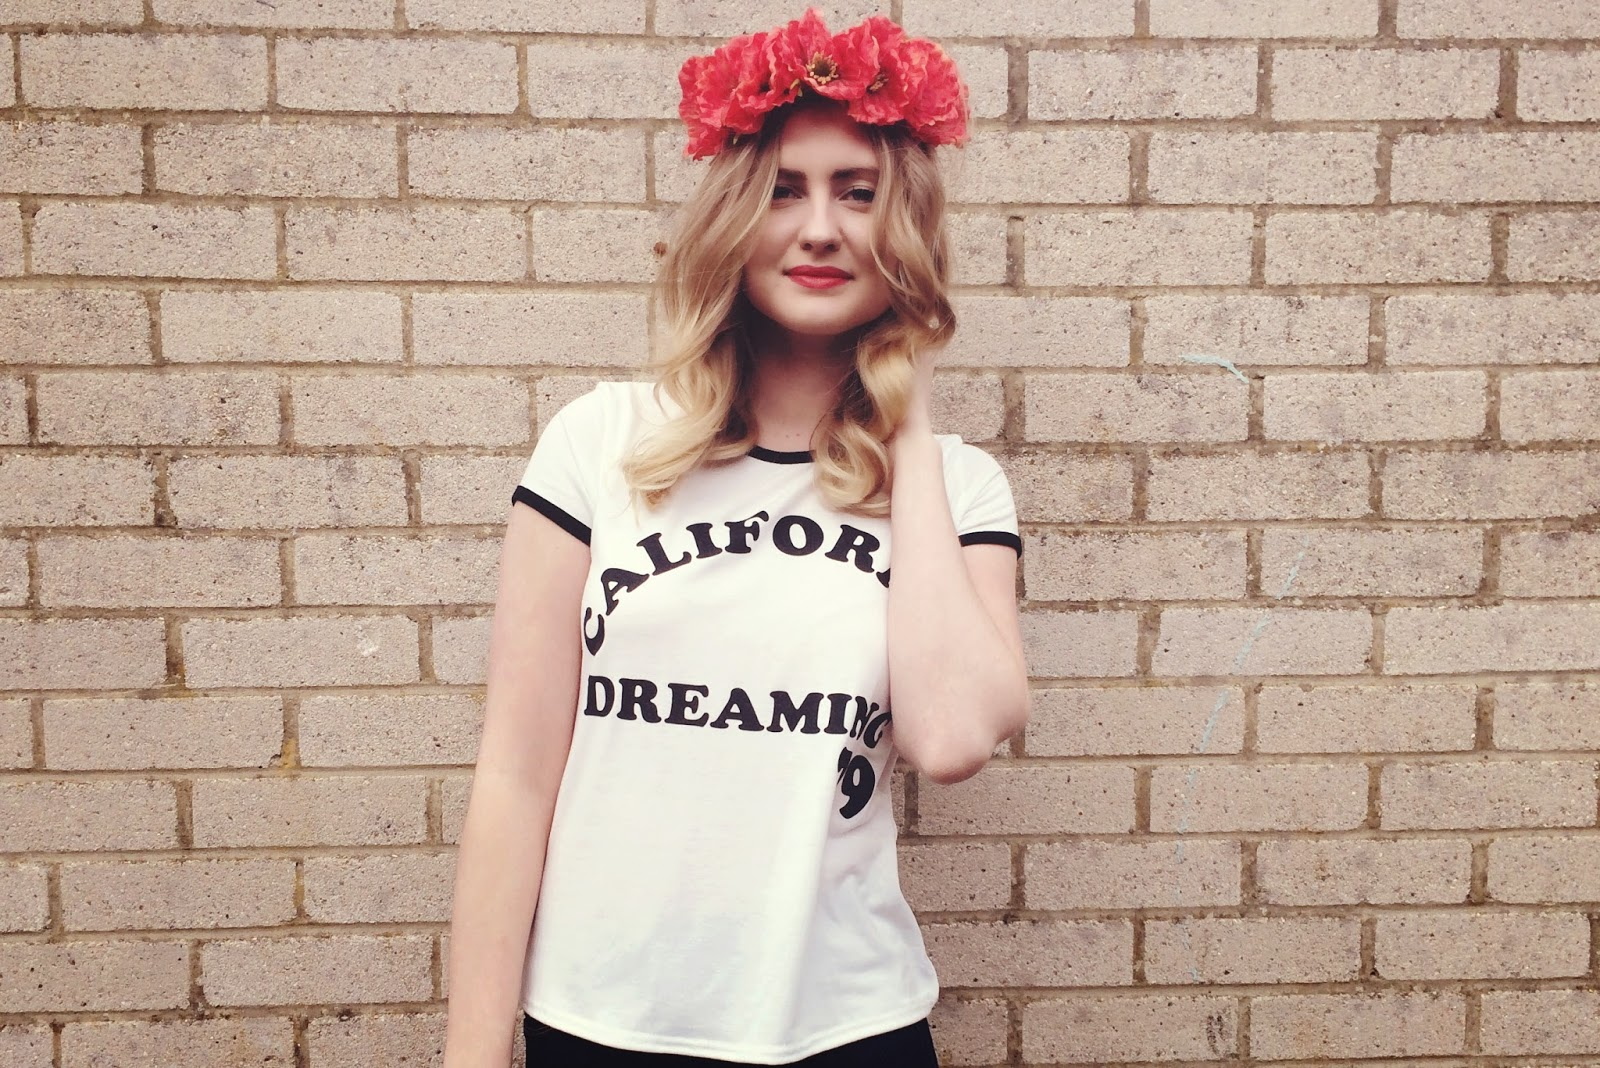 FashionFake, a UK fashion and lifestyle blog: brighten up your outfit with a bright floral head crown.